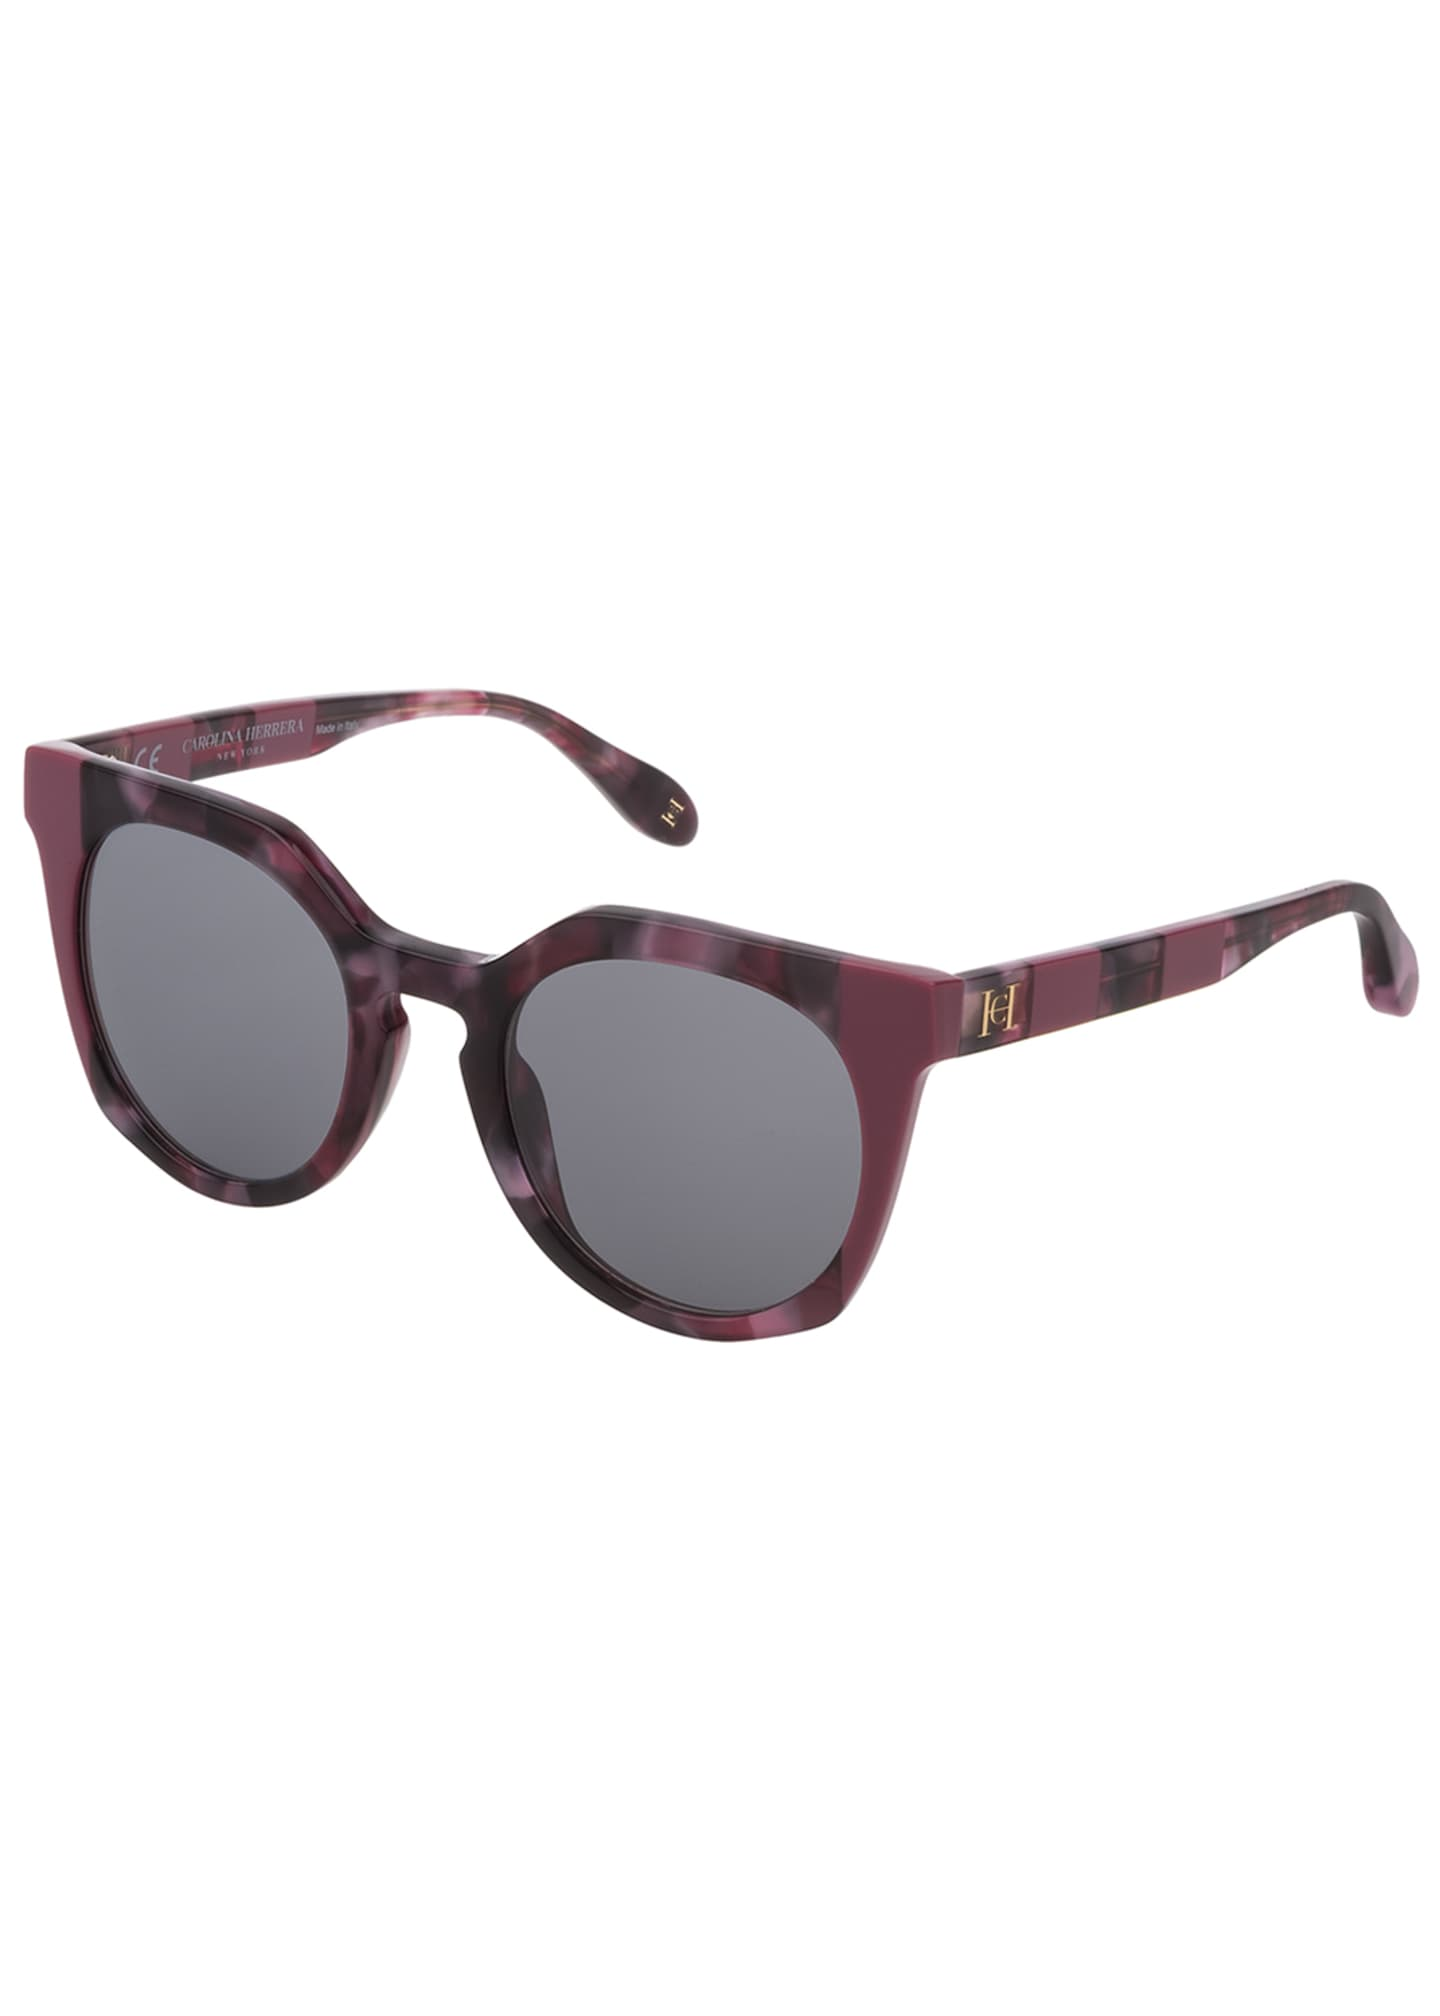 Carolina Herrera Round Acetate Sunglasses